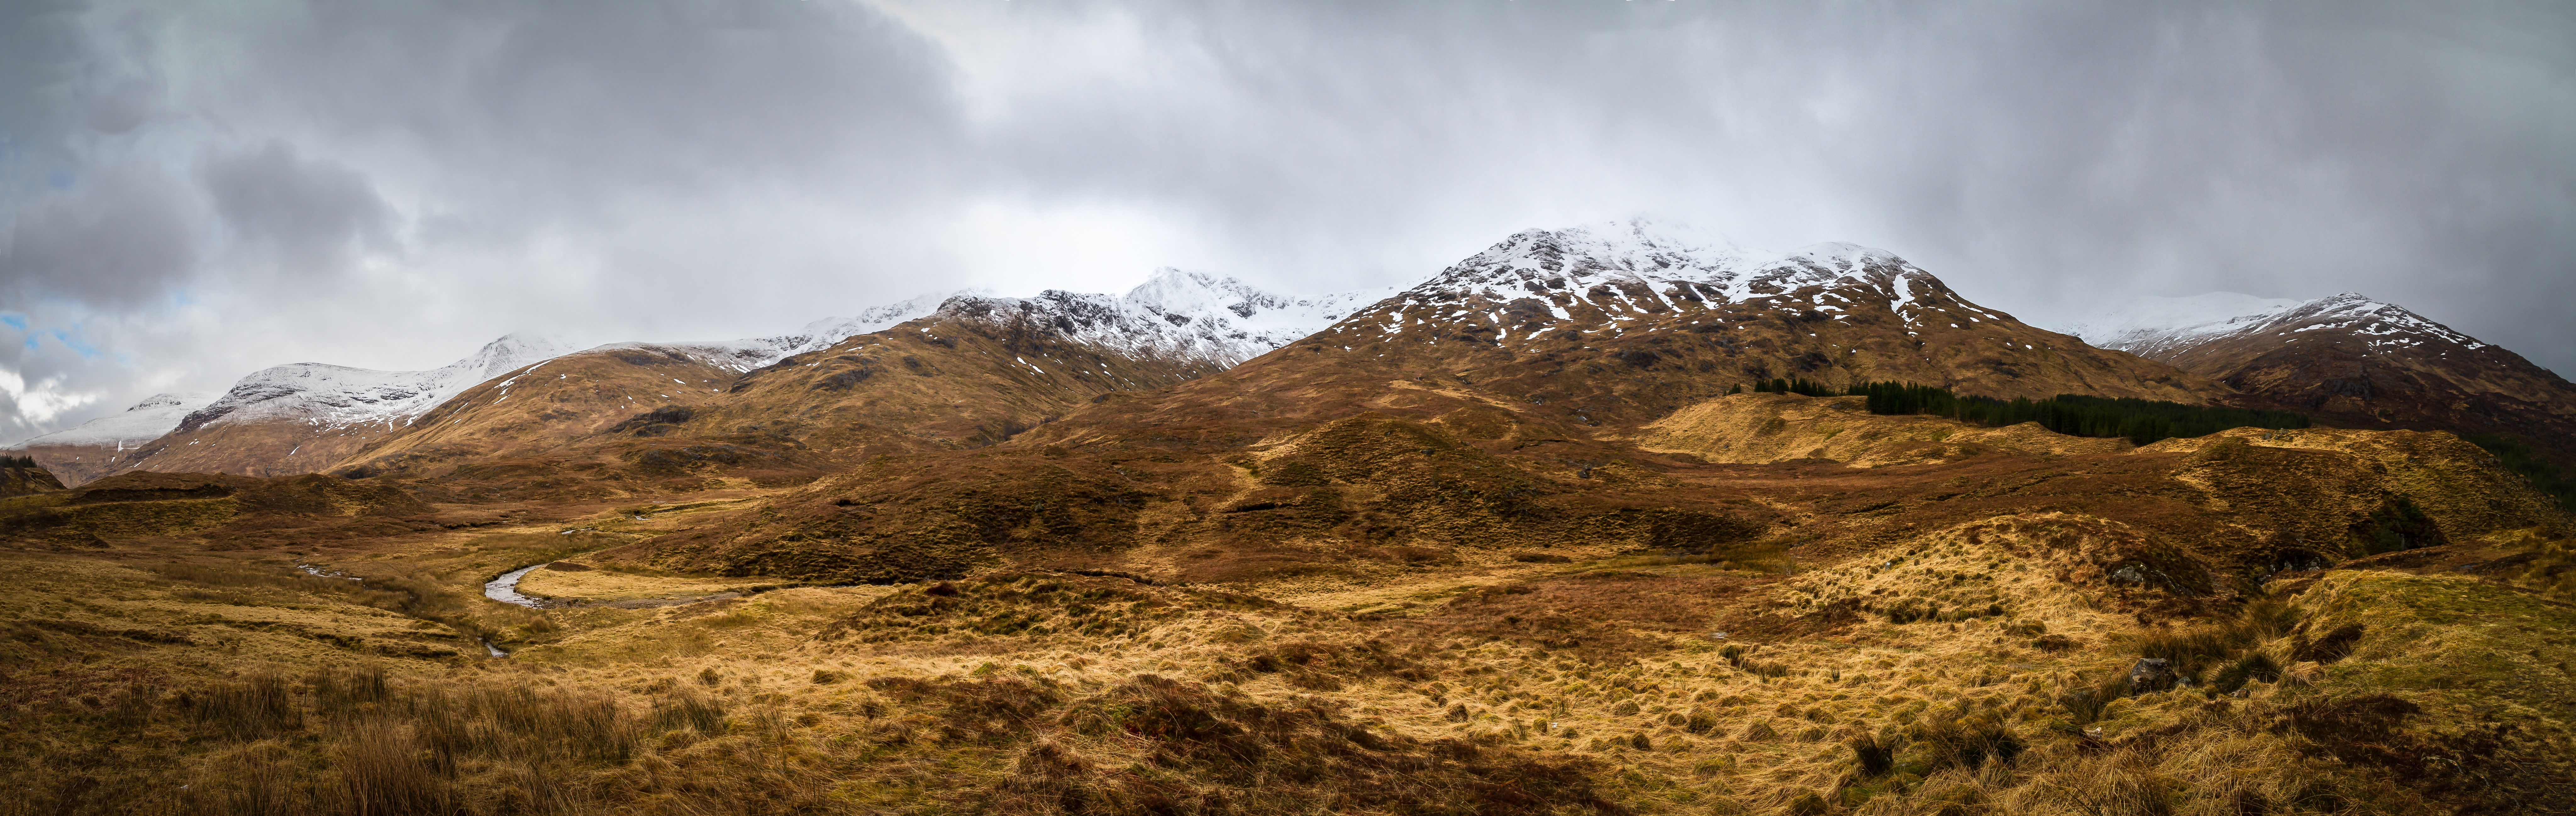 Free stock photo of mountain landscapes in scotland for Landscape photos